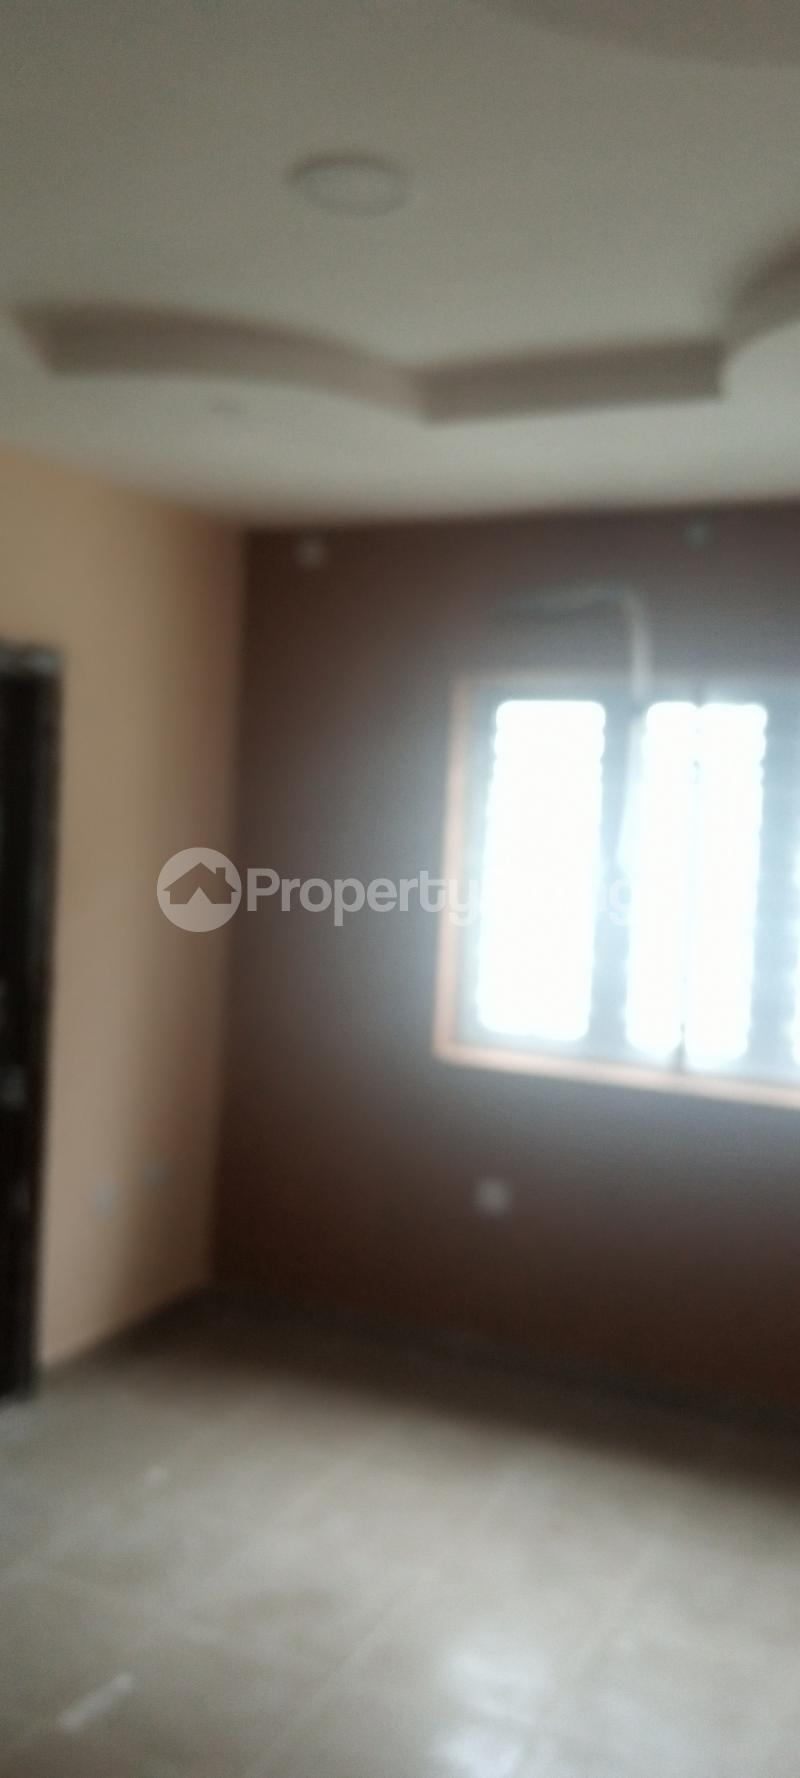 3 bedroom Flat / Apartment for rent A close Oke-Ira Ogba Lagos - 4